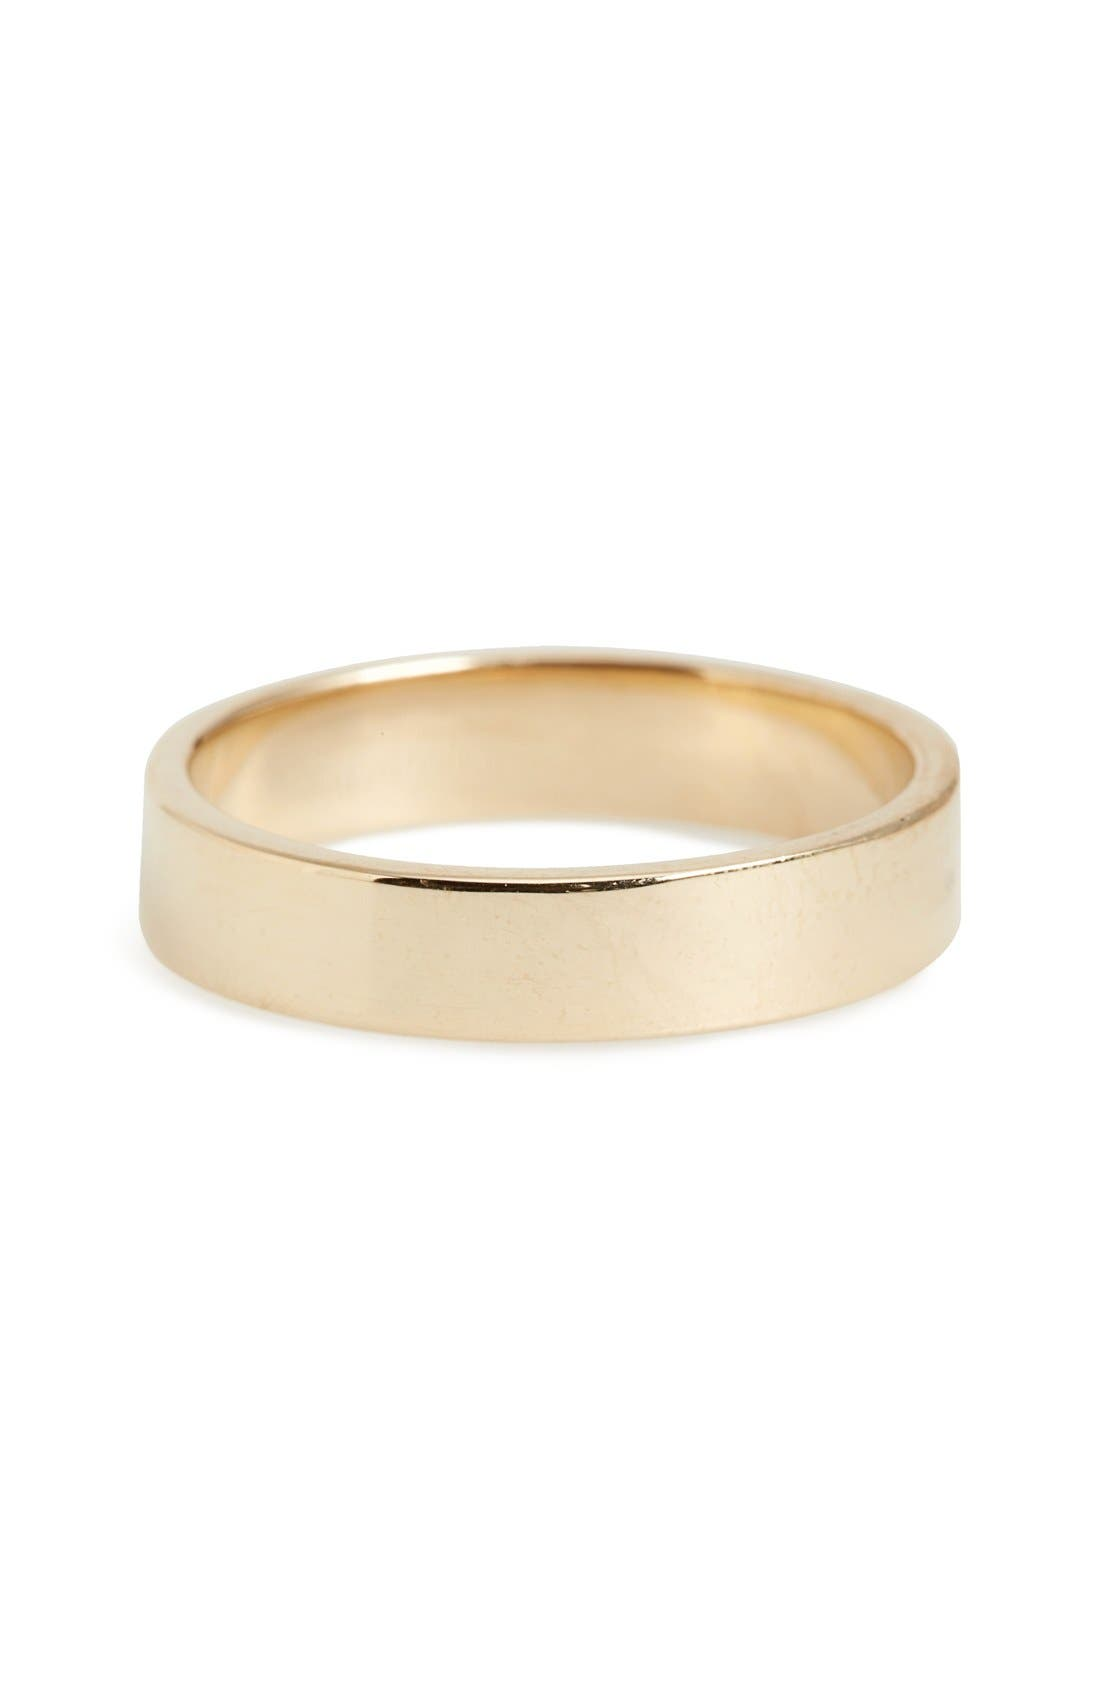 Harmony<sup>®</sup> Flat Classic 4mm Shiny Band Ring,                         Main,                         color, Yellow